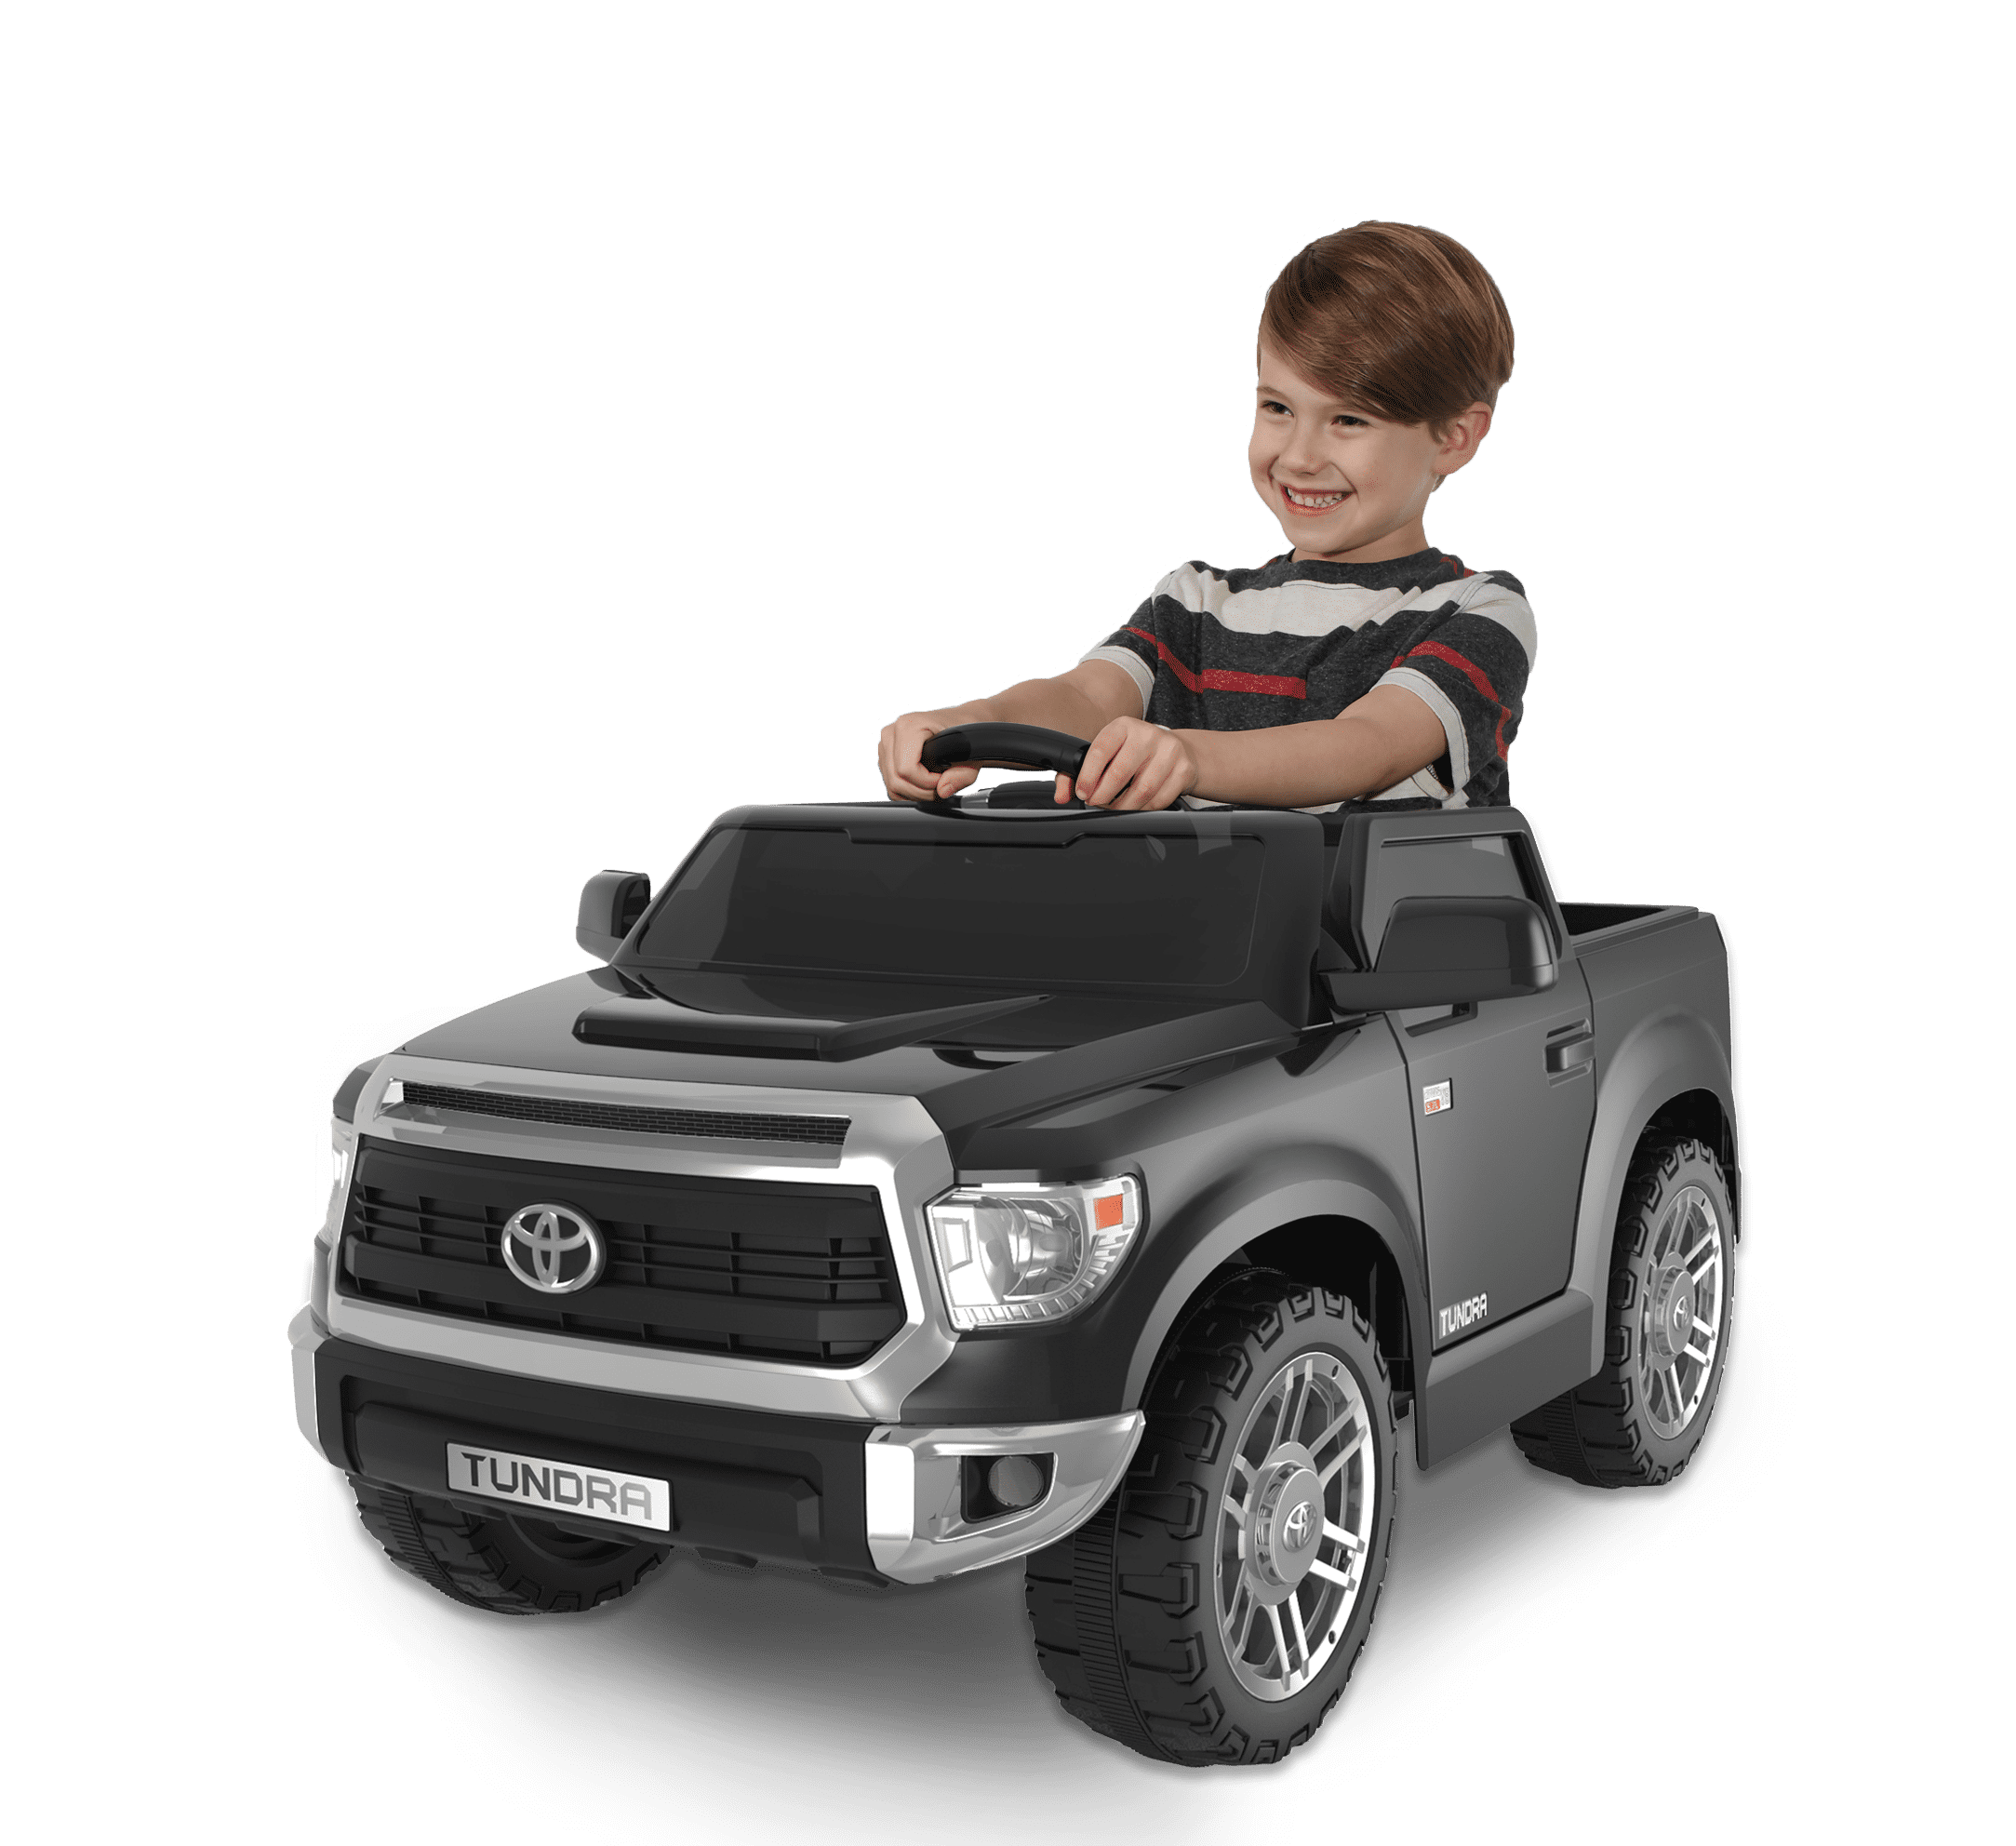 6 Volt Toyota Tundra Electric Ride On By Dynacraft With Working Truck Bed And Mp3 Player Walmart Com Walmart Com